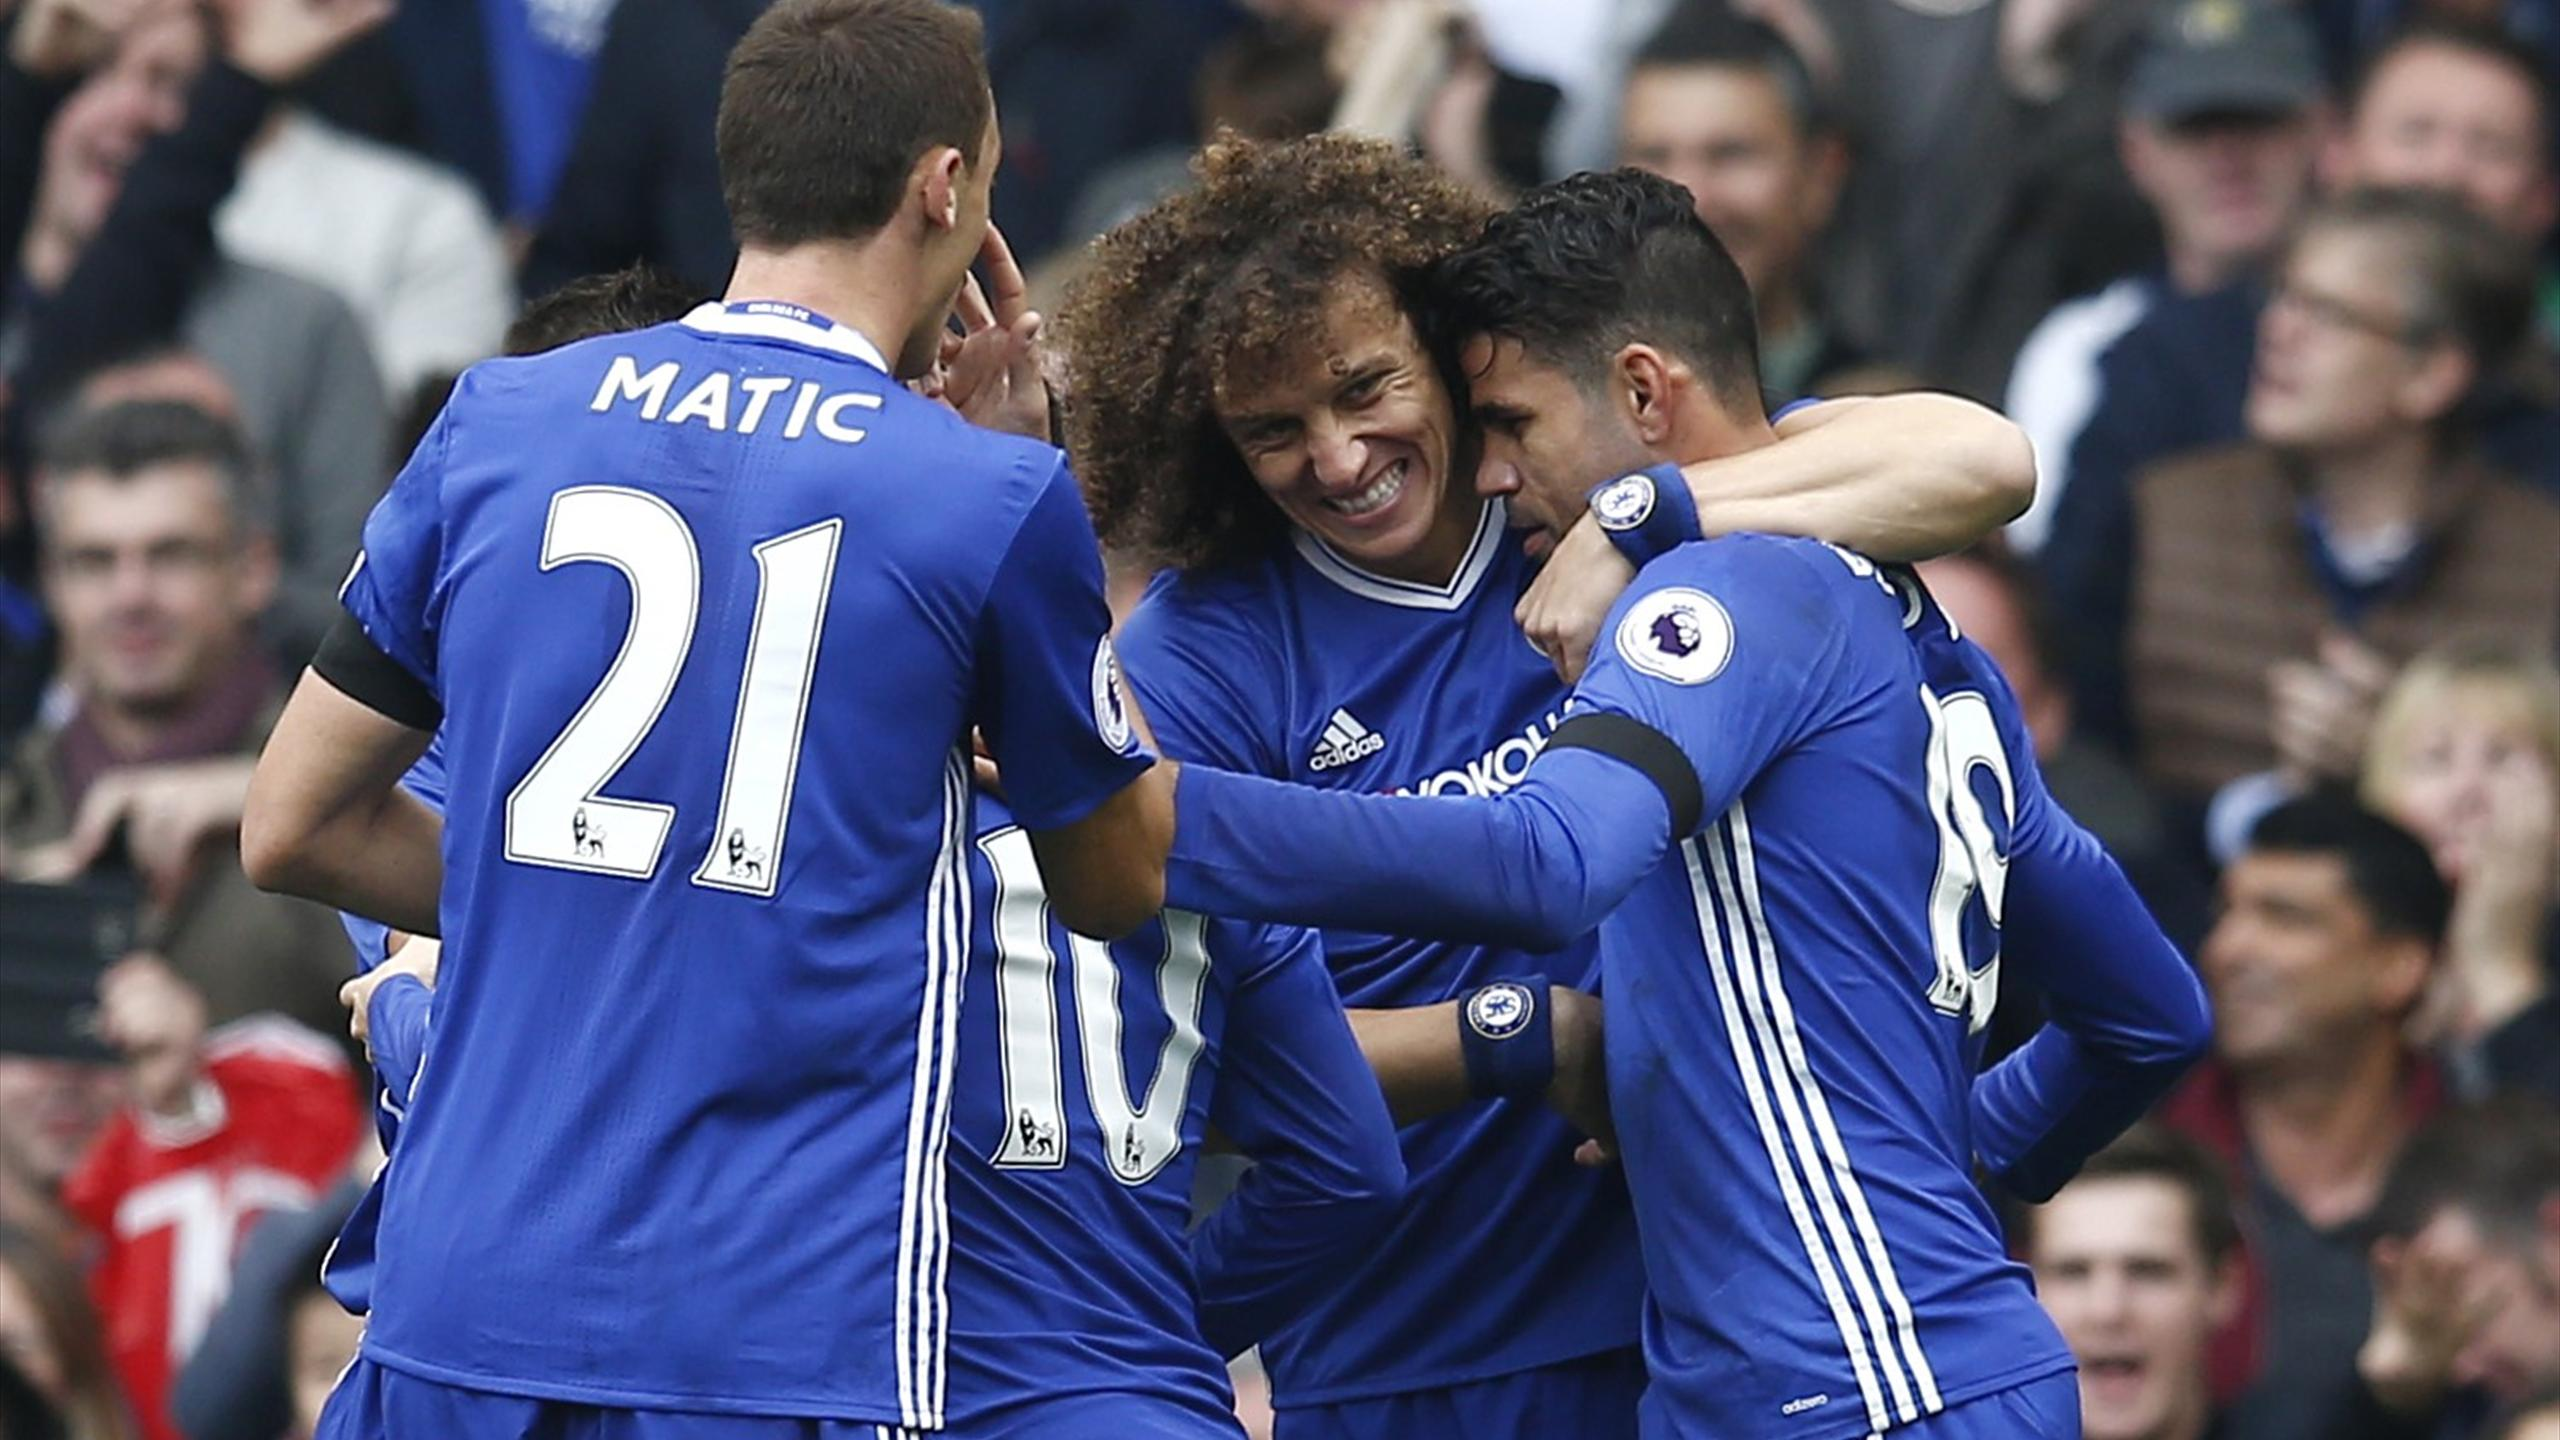 Chelsea's Diego Costa celebrates scoring their first goal with David Luiz and Nemanja Matic